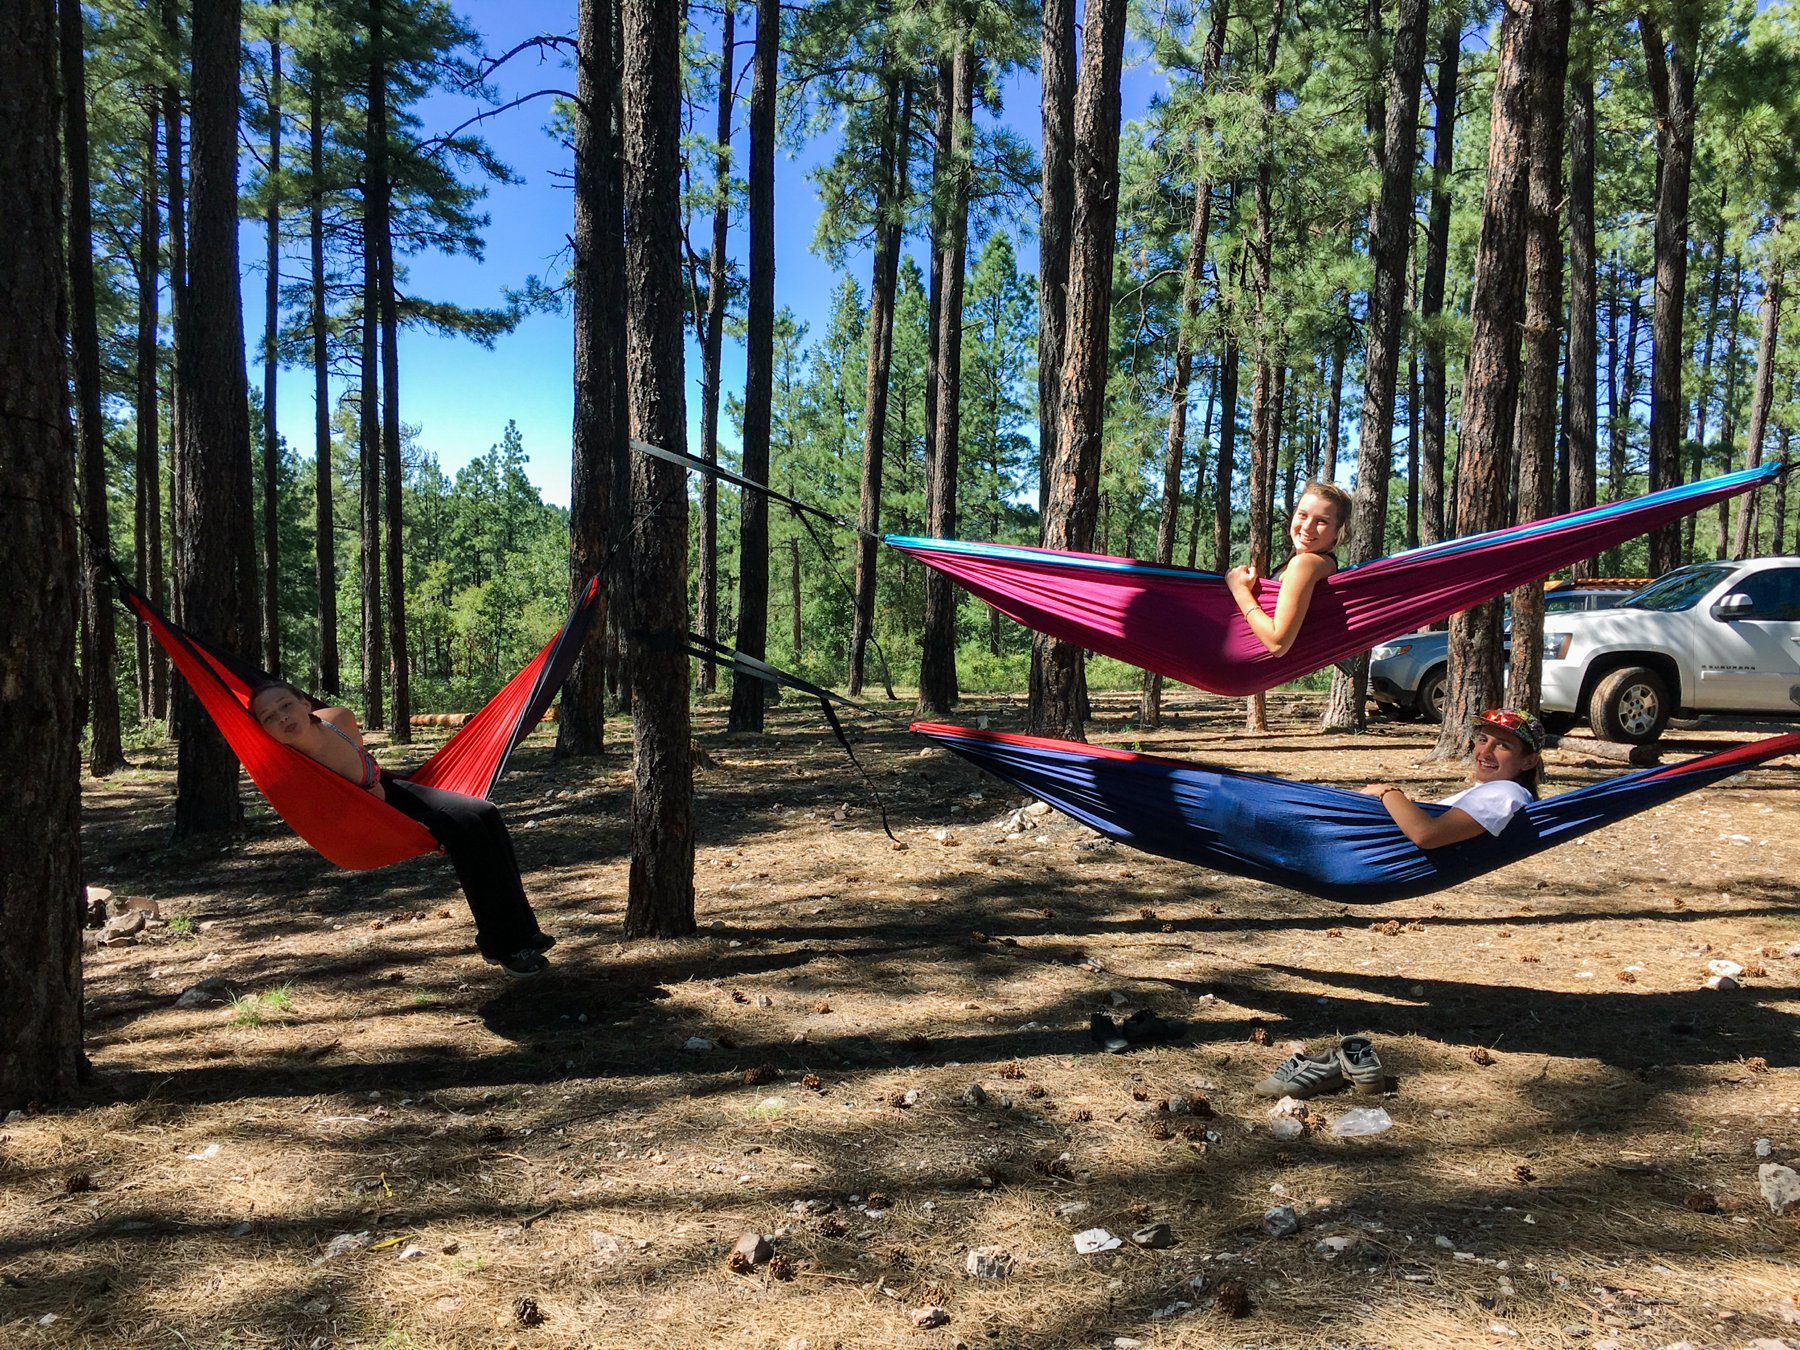 travel, adventure, sunshine, camping, arizona, hammocks, river, sun, happiness, exploring